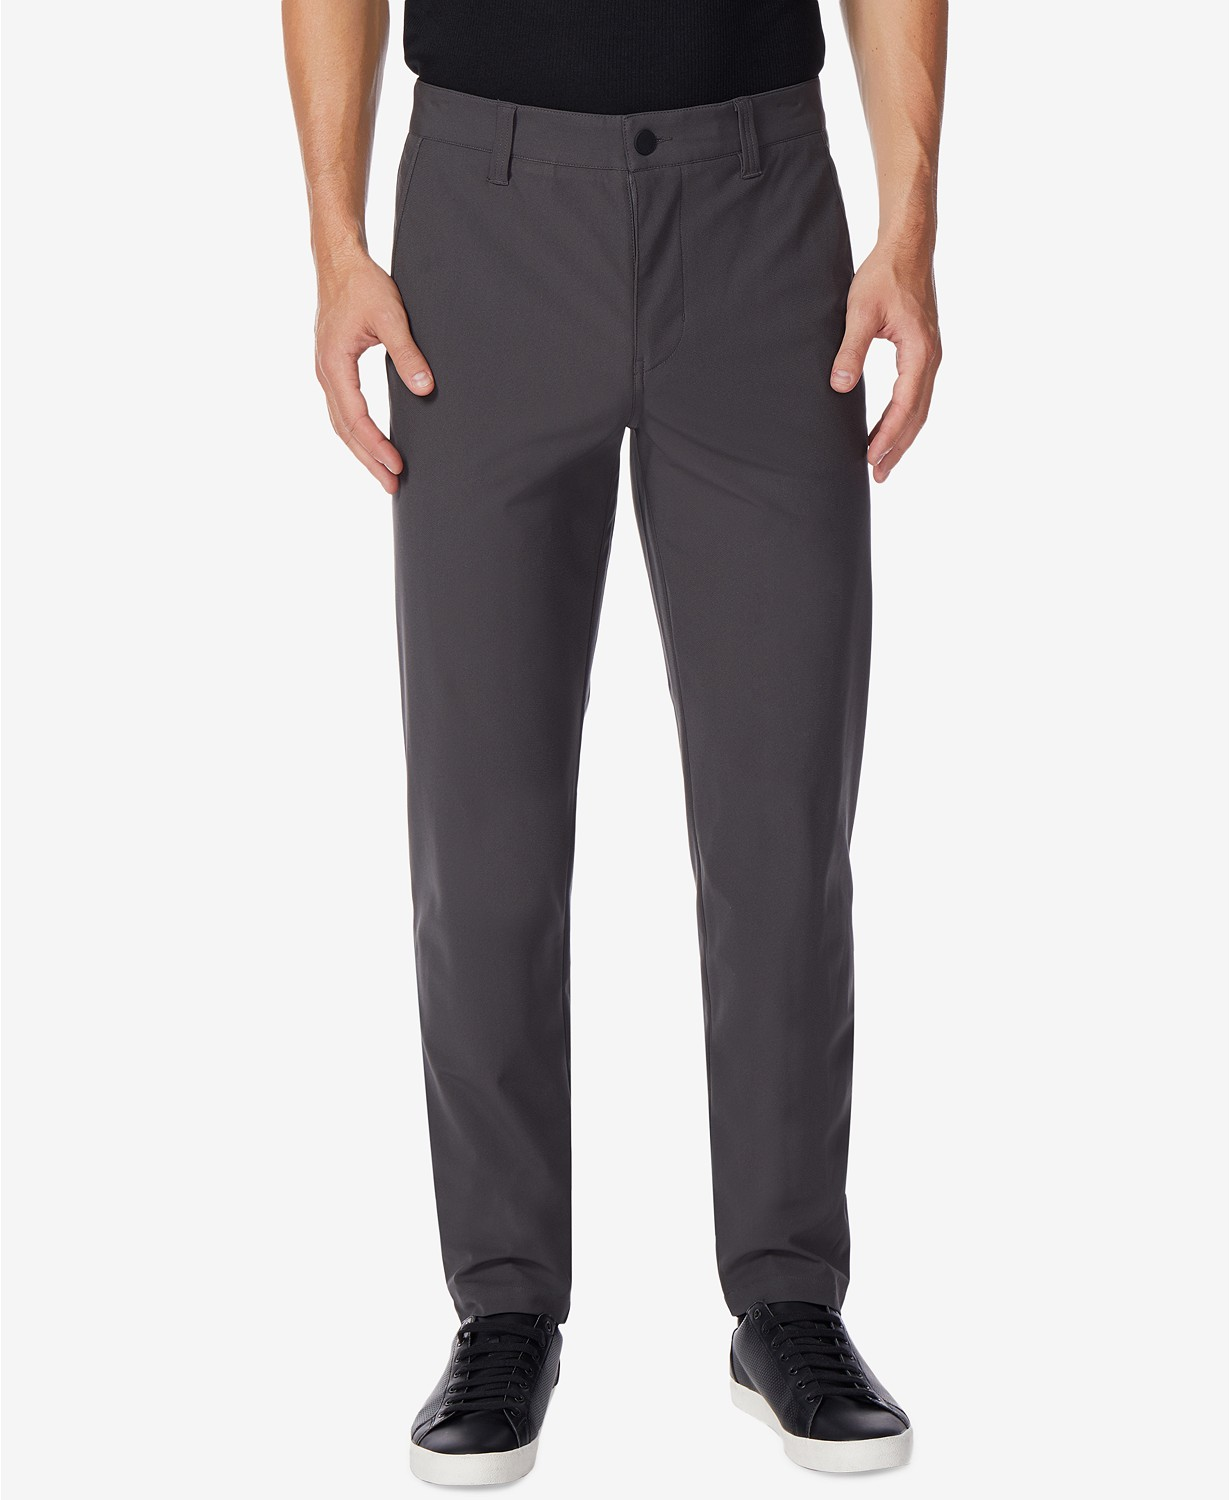 32 Degrees Men's Trouser Pant (Coal, Khaki, Navy) $11.53